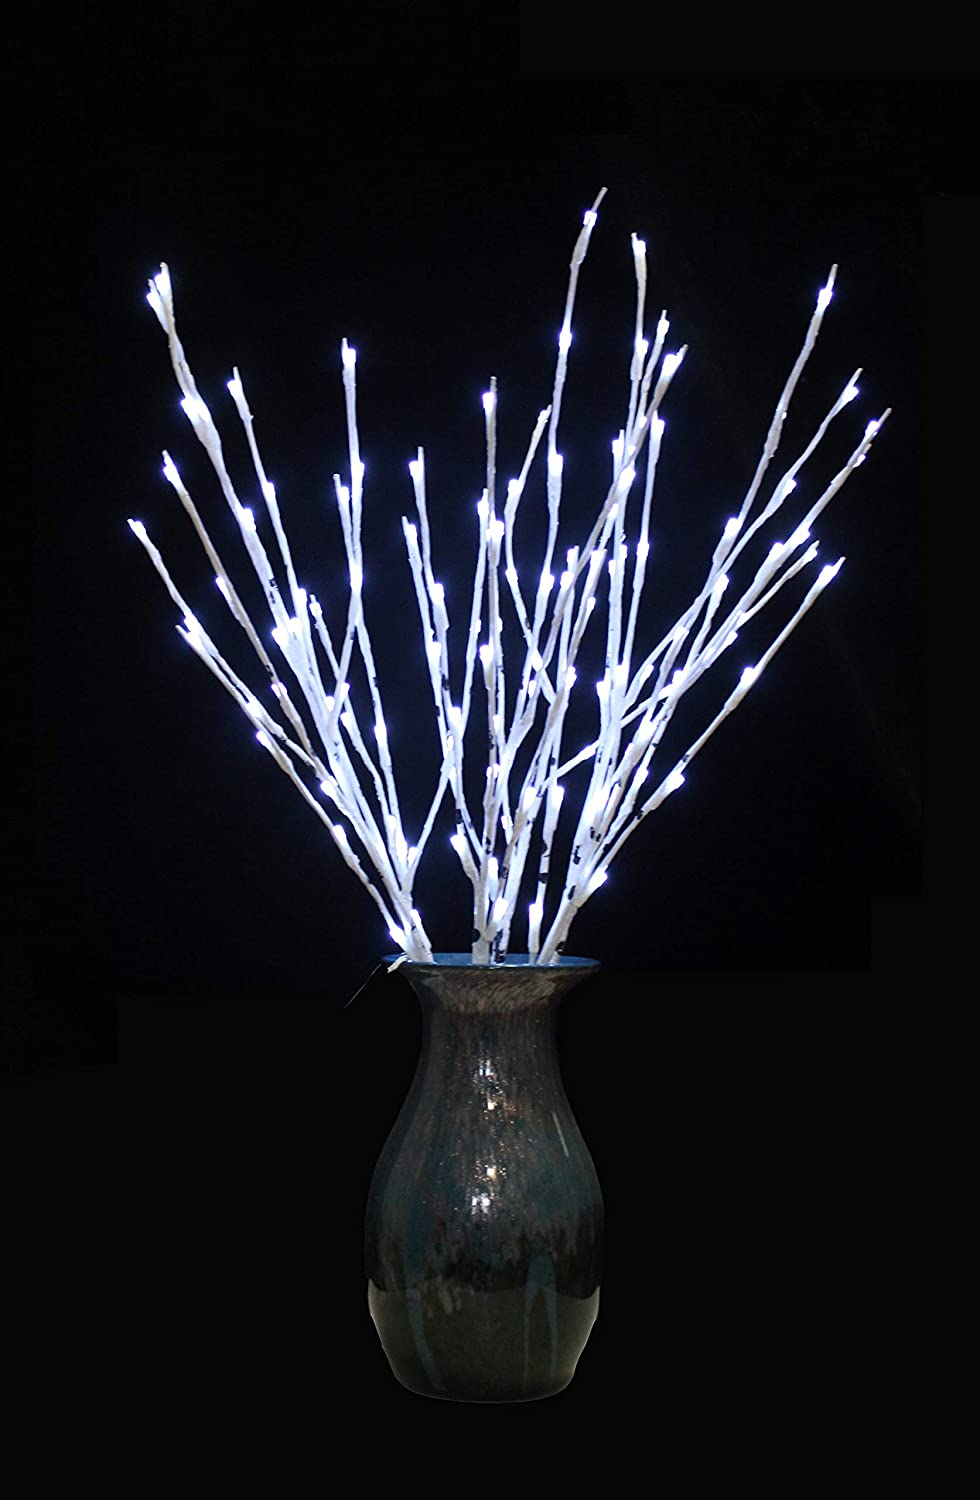 snowstorm 30 inches Lighted Birch Tree 60 LED Lights Warm White for Home Christmas Wedding Festival Party Decoration,Indoor and Outdoor(2 Sets)